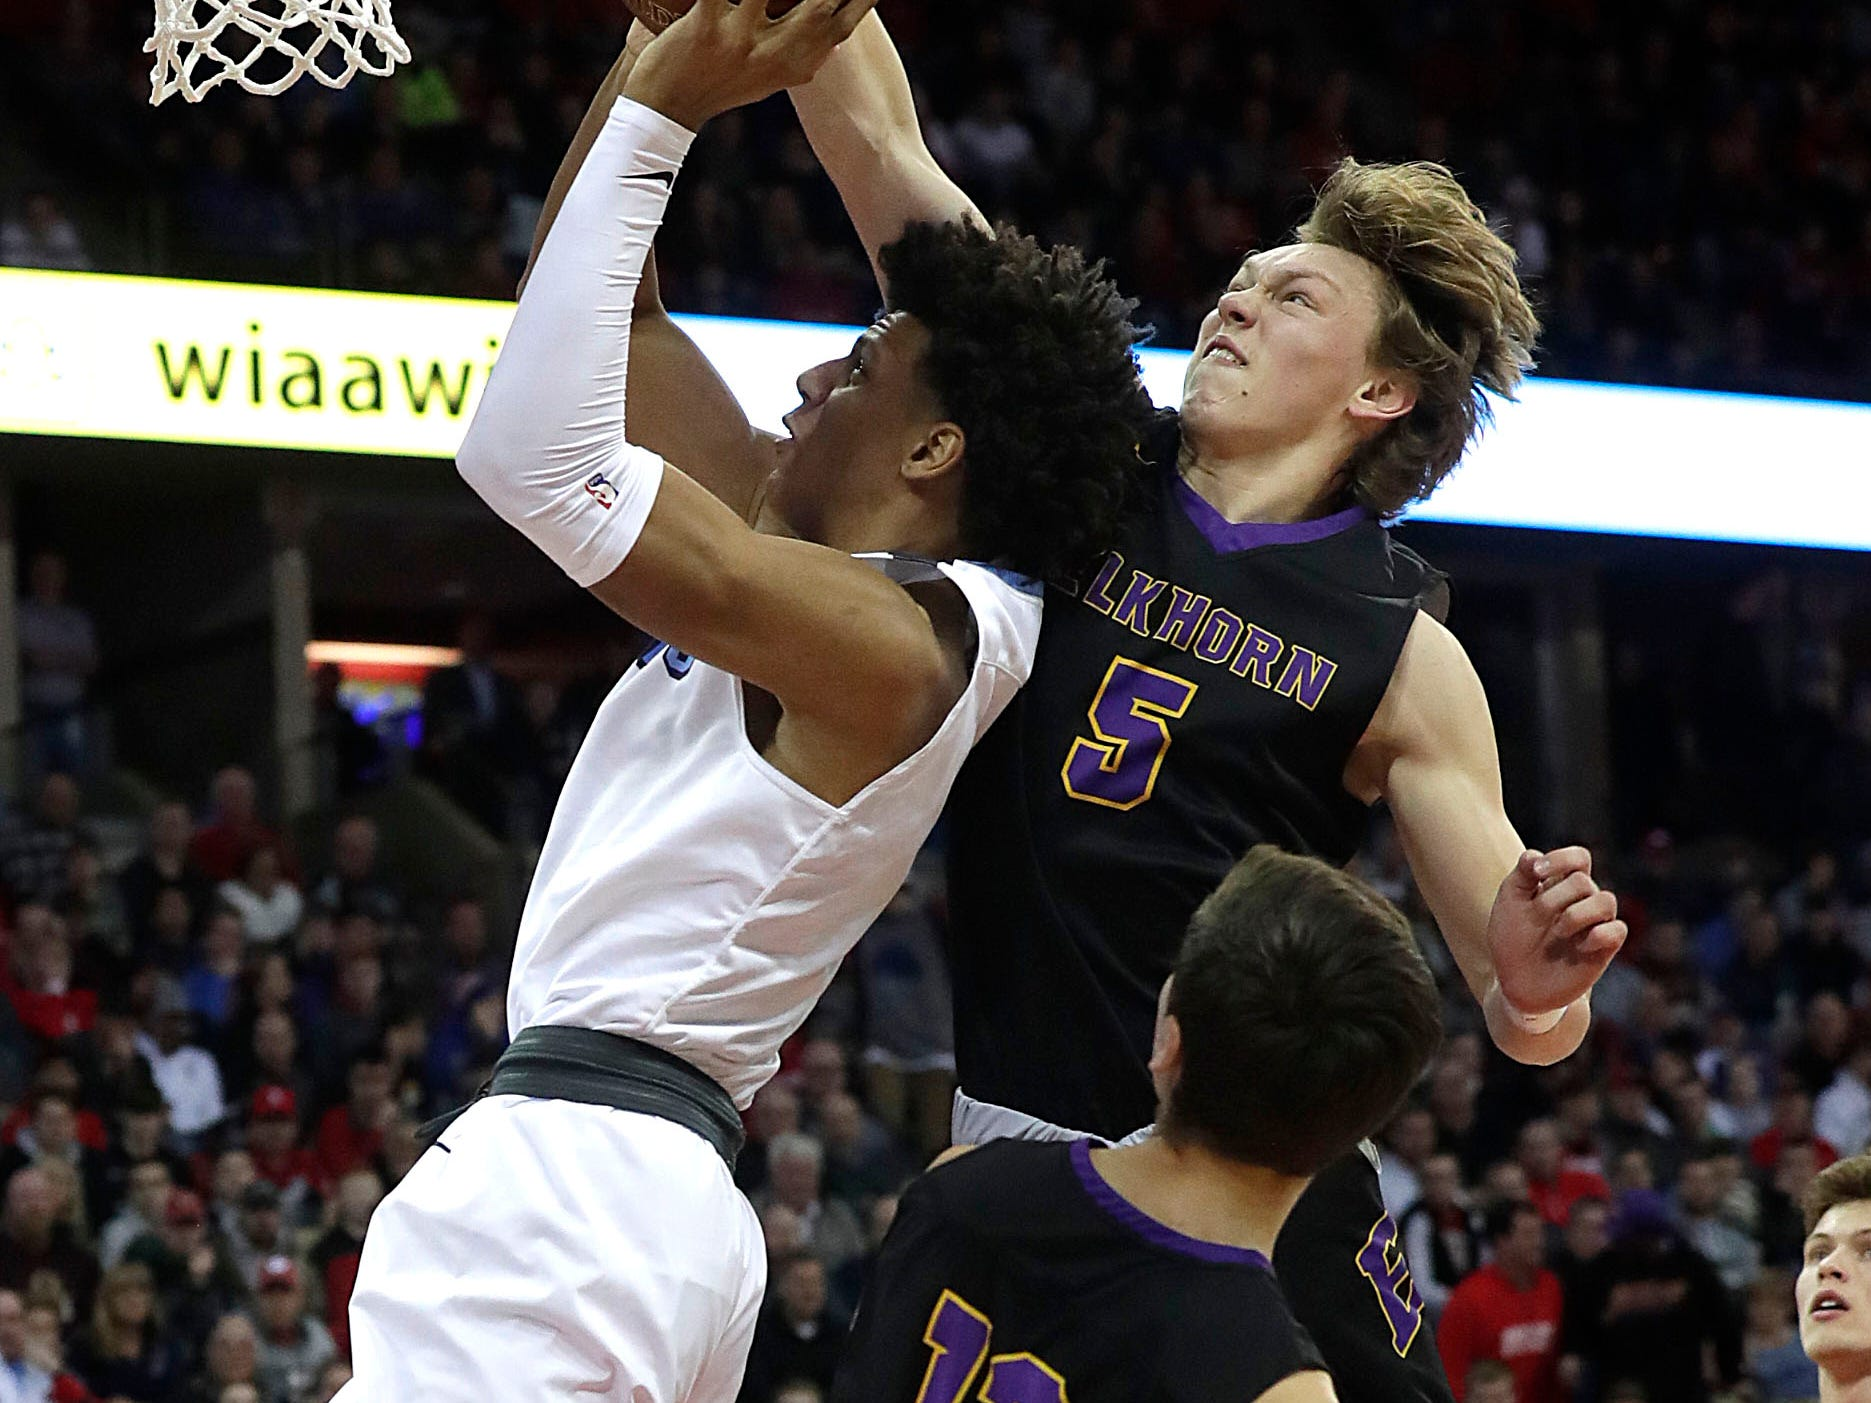 Elkhorn's Chance Larson blocks the shot of Nicolet's Jalen Johnson's shot Friday afternoon in the Division 2 semifinals.